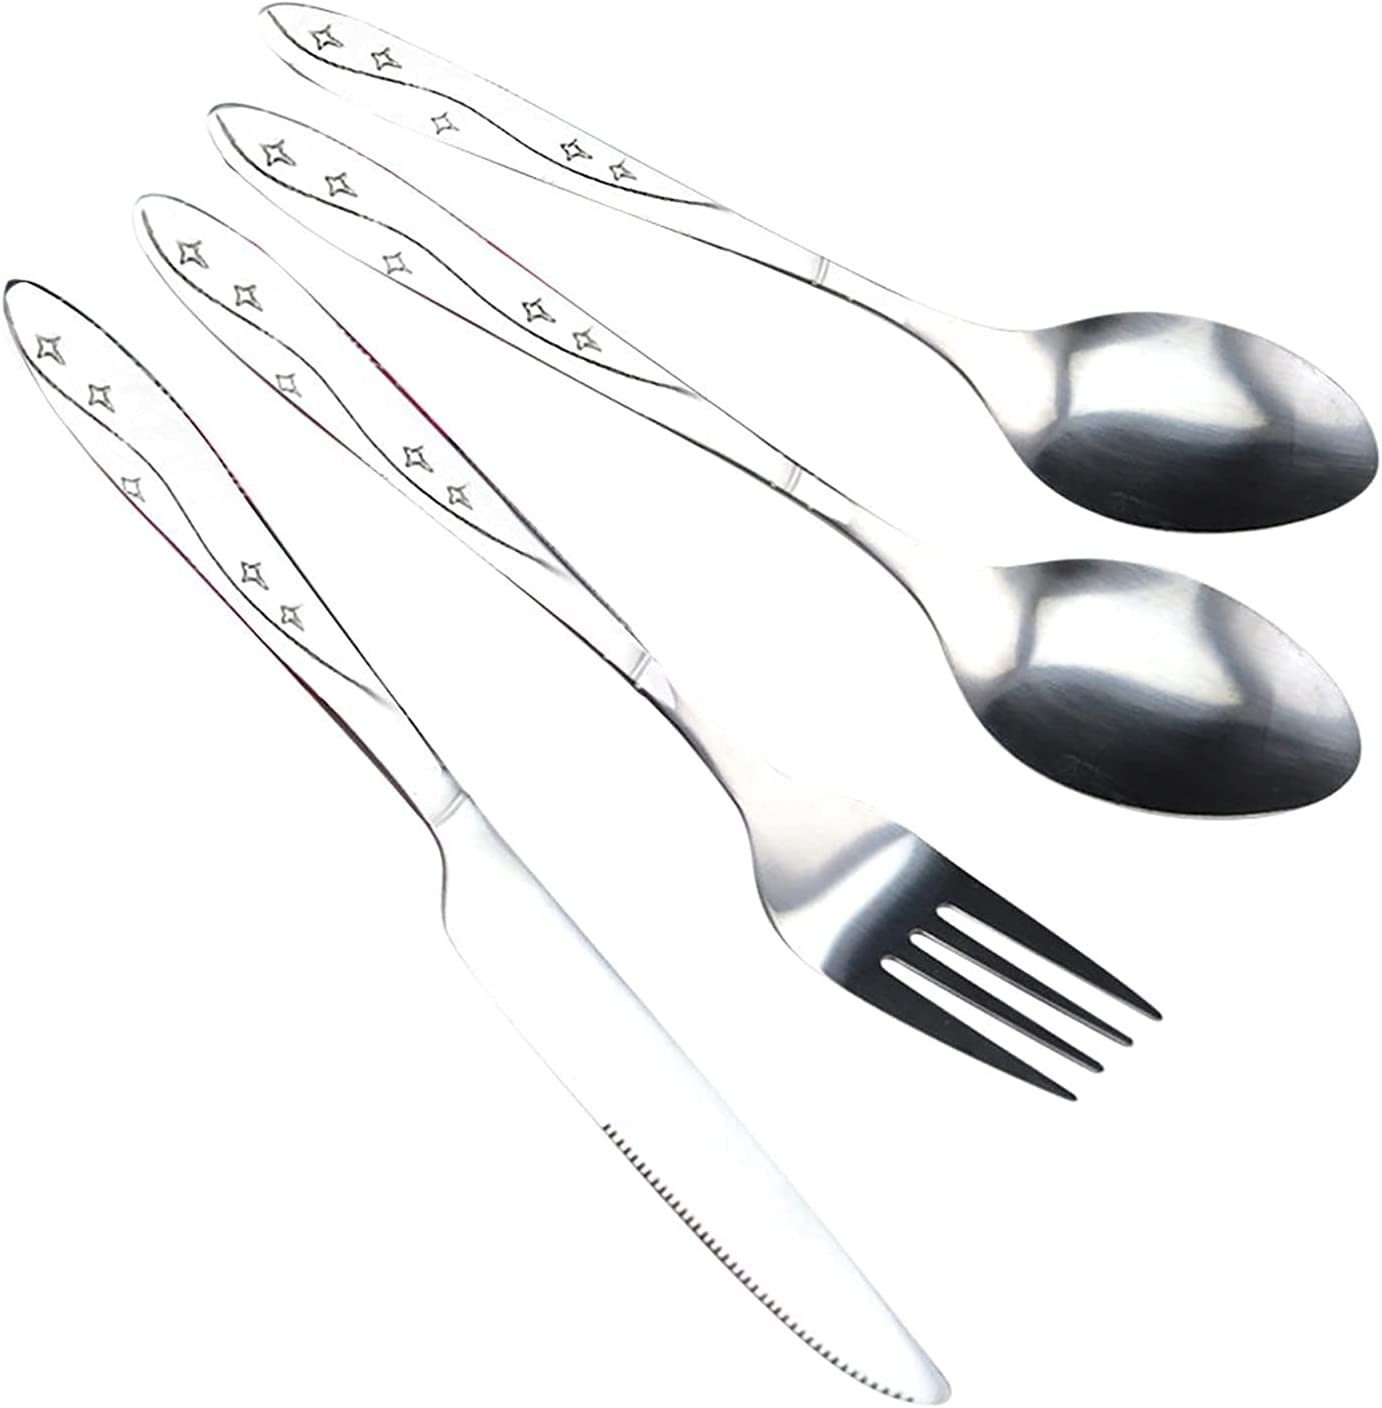 Stainless Time sale Steel Knife Regular discount Fork Spoon Family Cutlery Camping P Travel